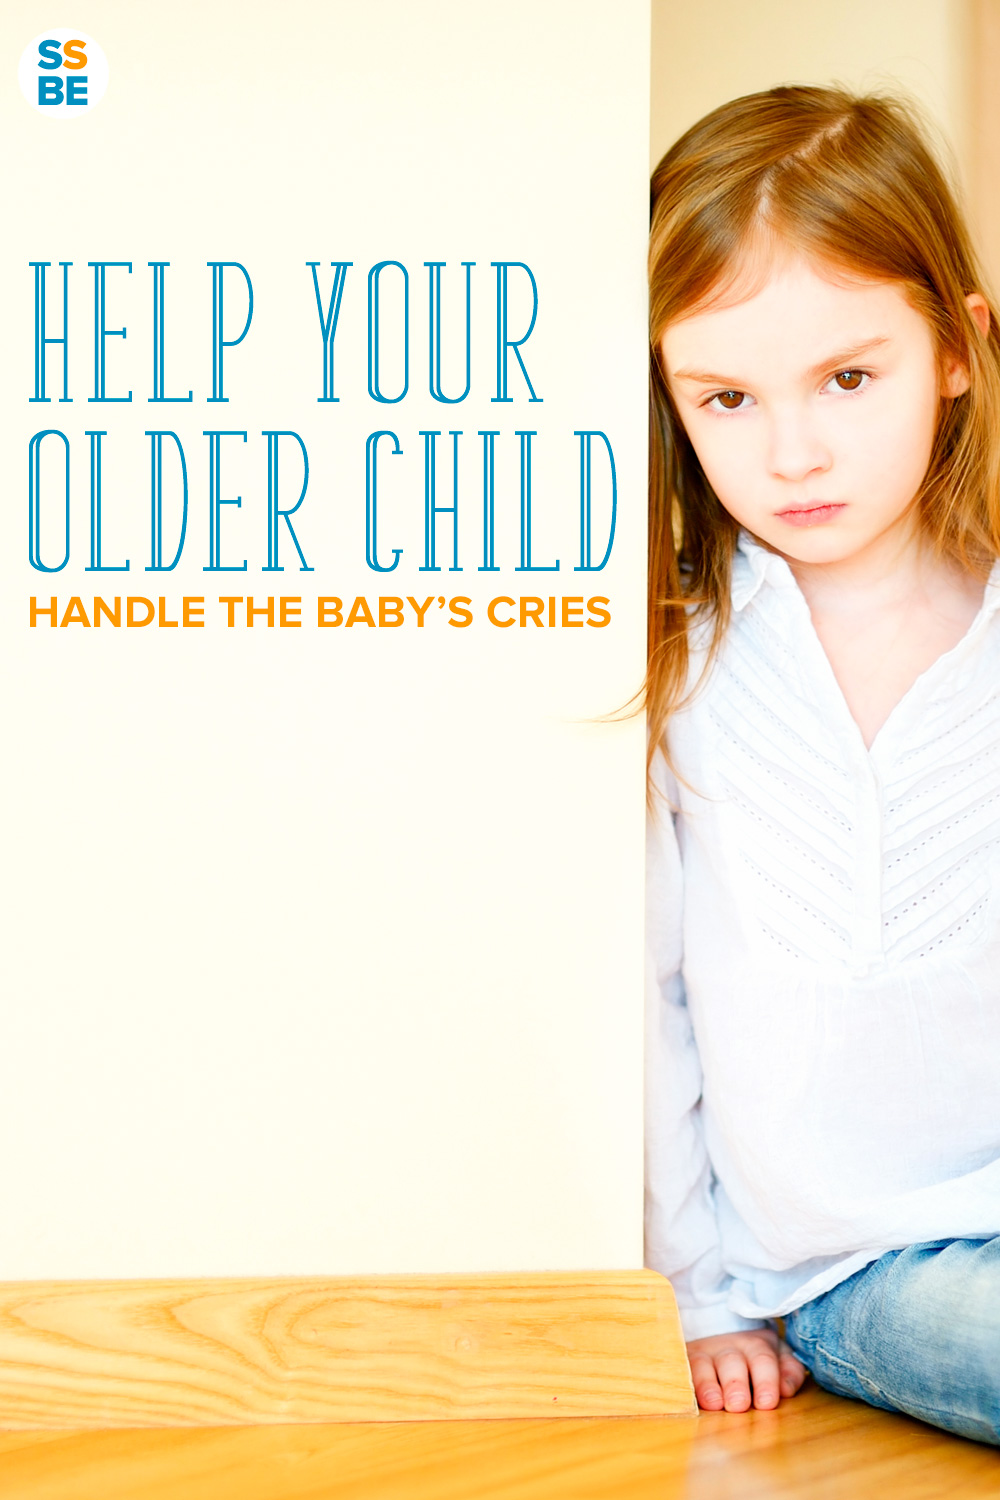 It's hard for parents to deal with a baby crying. Now your older child has to as well. Here's how to help your child handle a baby crying.